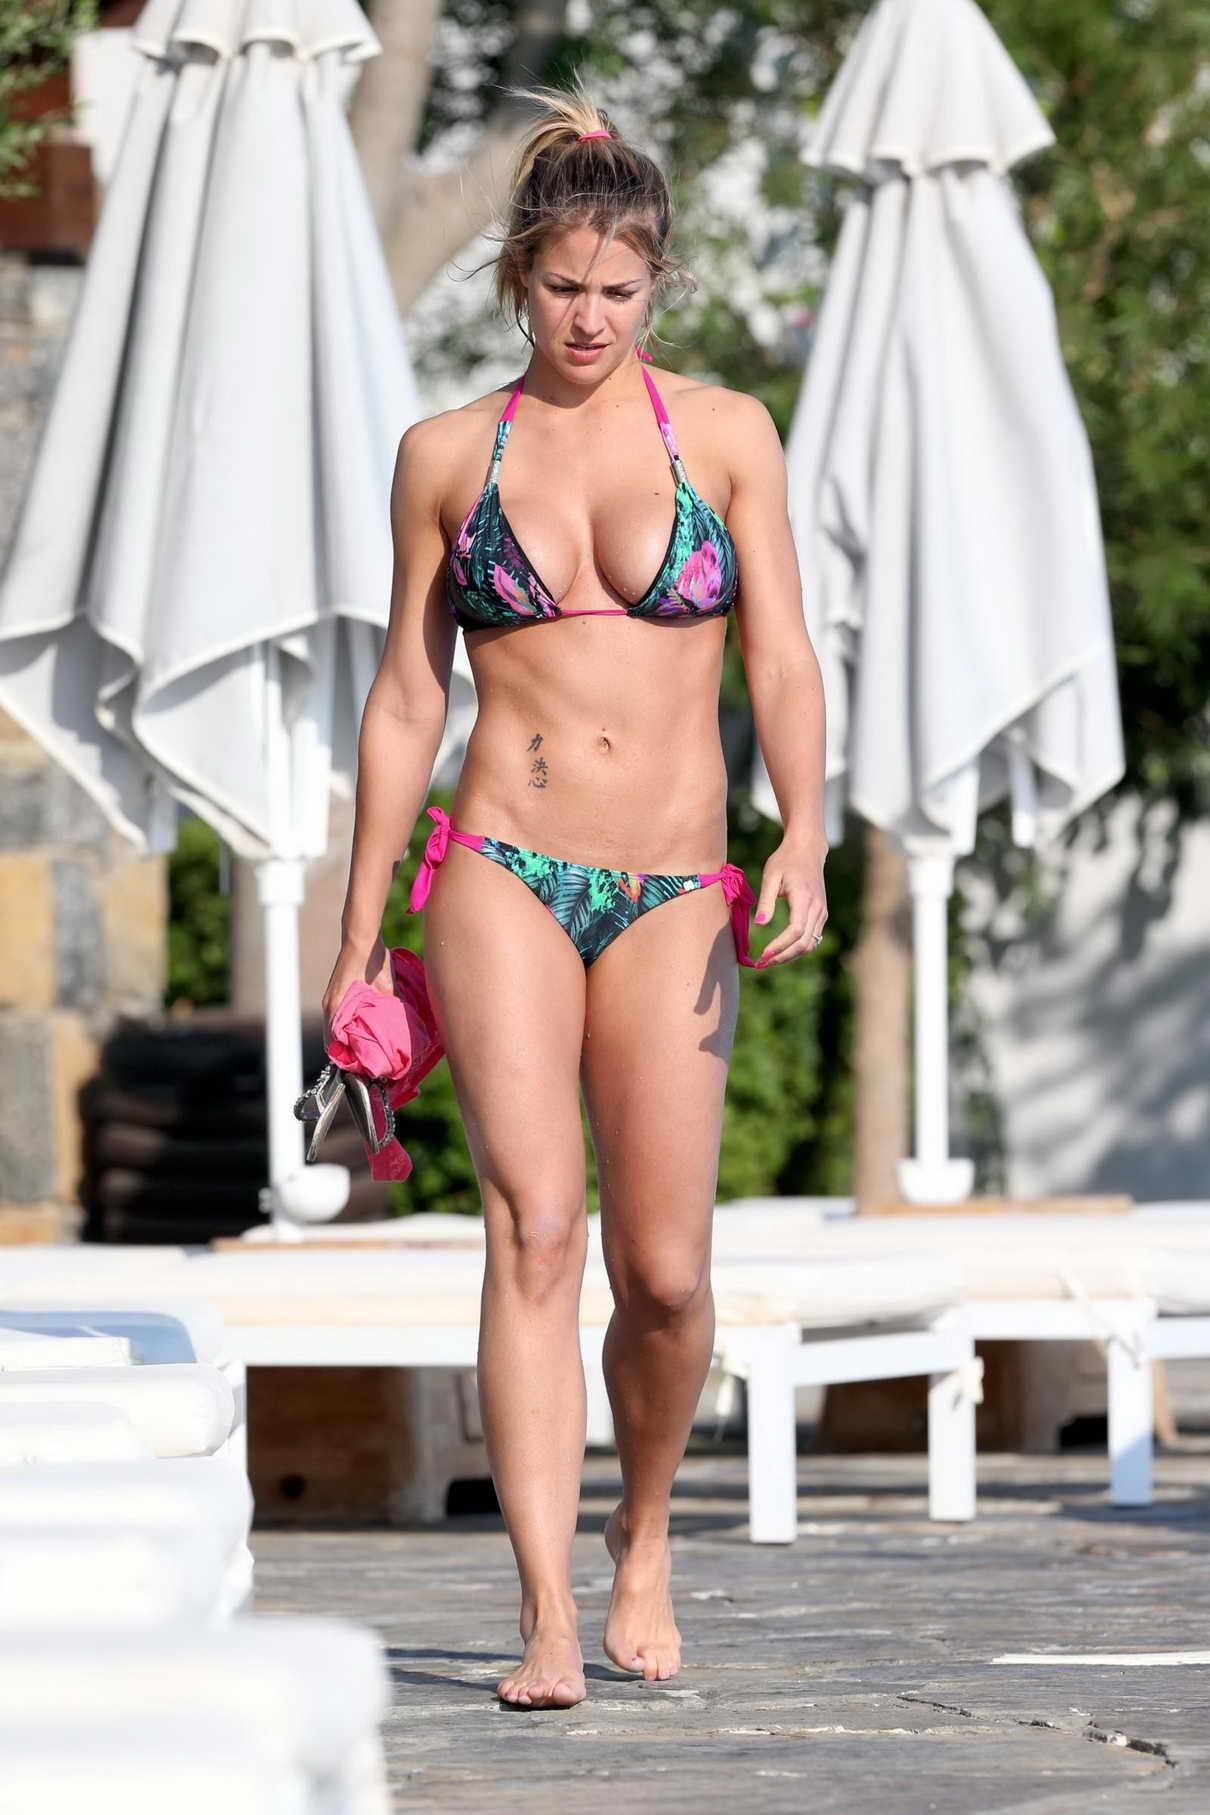 Gemma Atkinson In Bikini In Spain Gemma Atkinson